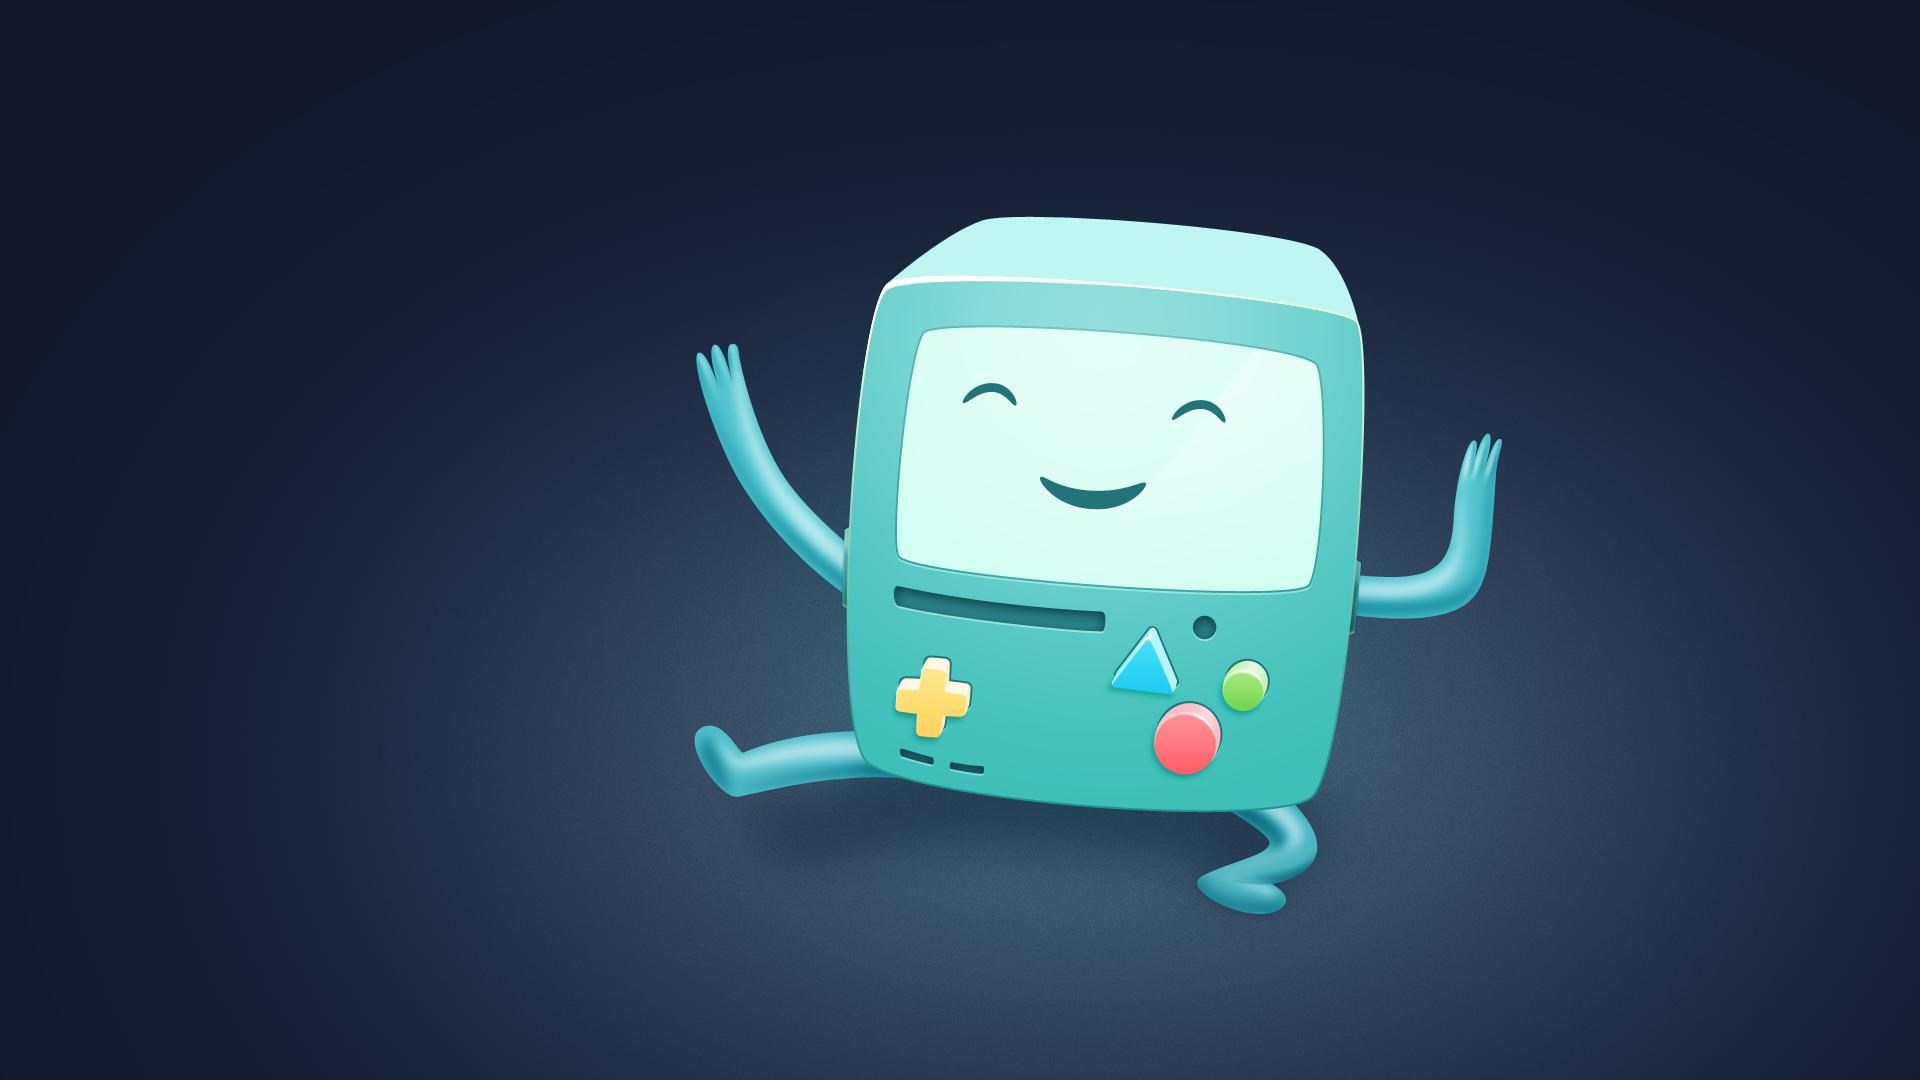 bmo-video-game-cute-adventure-time-1080p-hd-wallpaper-wpc5802946